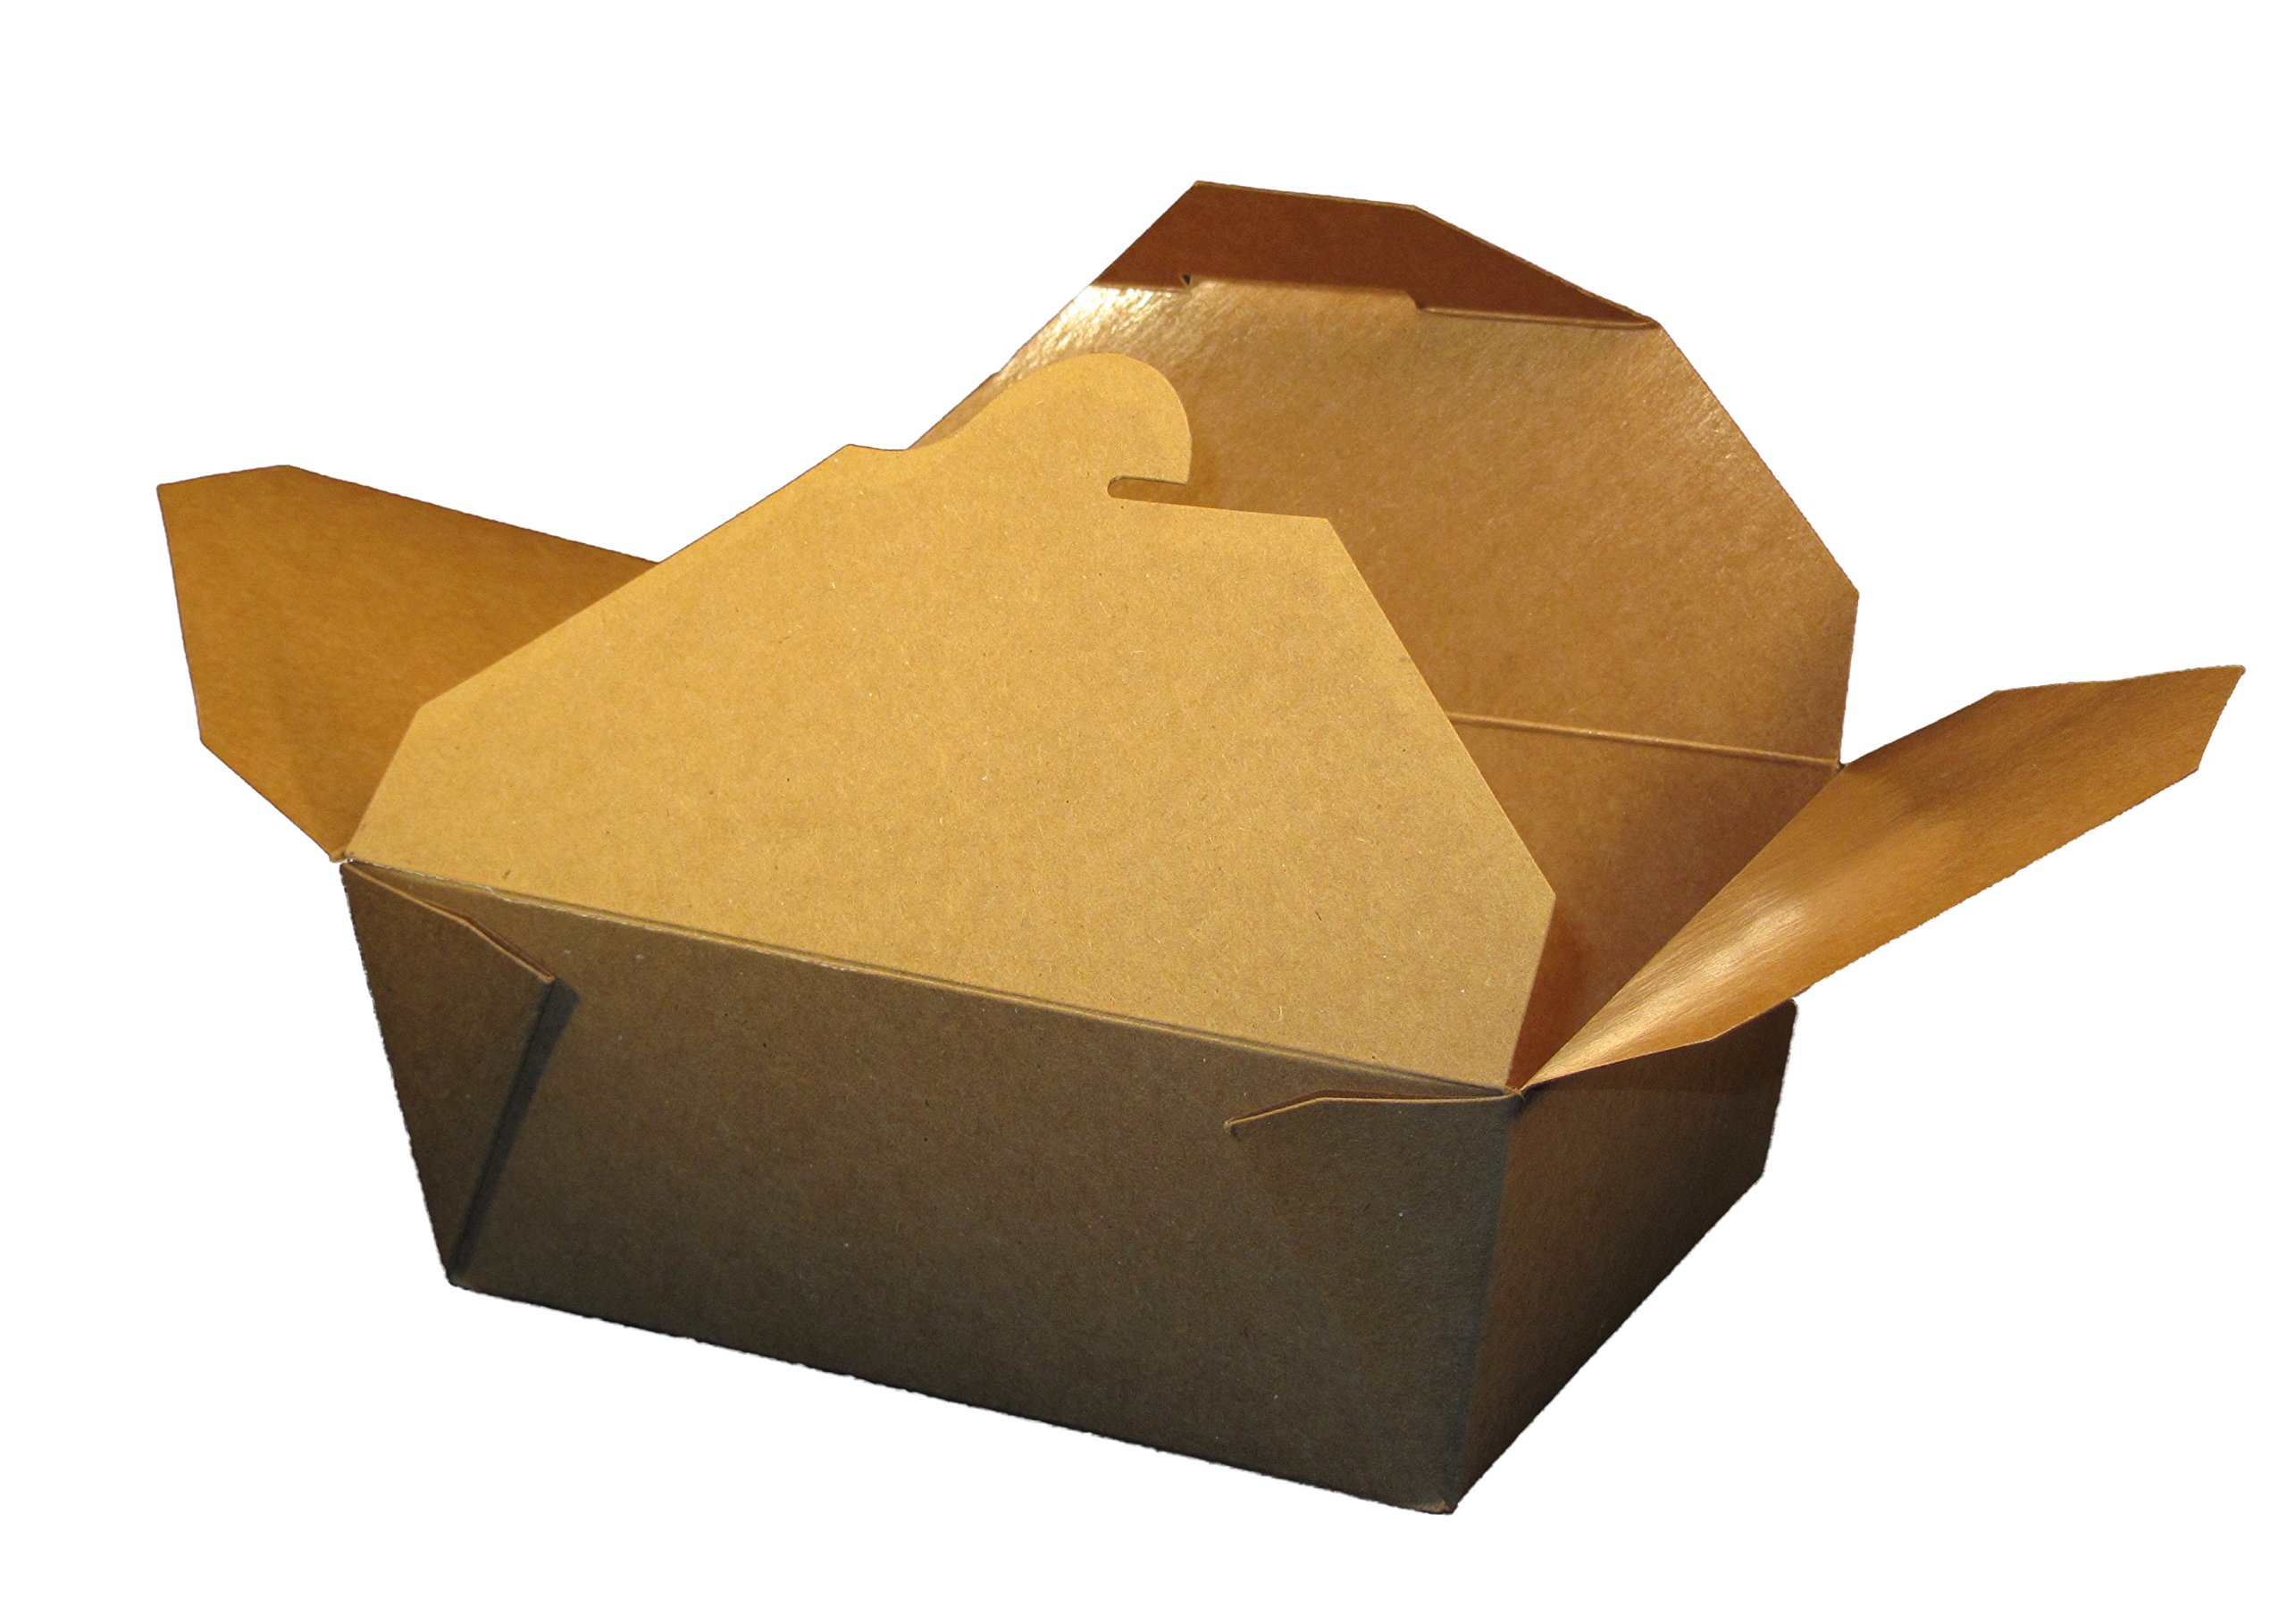 Specialty Quality Packaging 100860 Eco-Box Food Tray, 8 Kraft (Pack of 300) by Specialty Quality Packaging (Image #1)